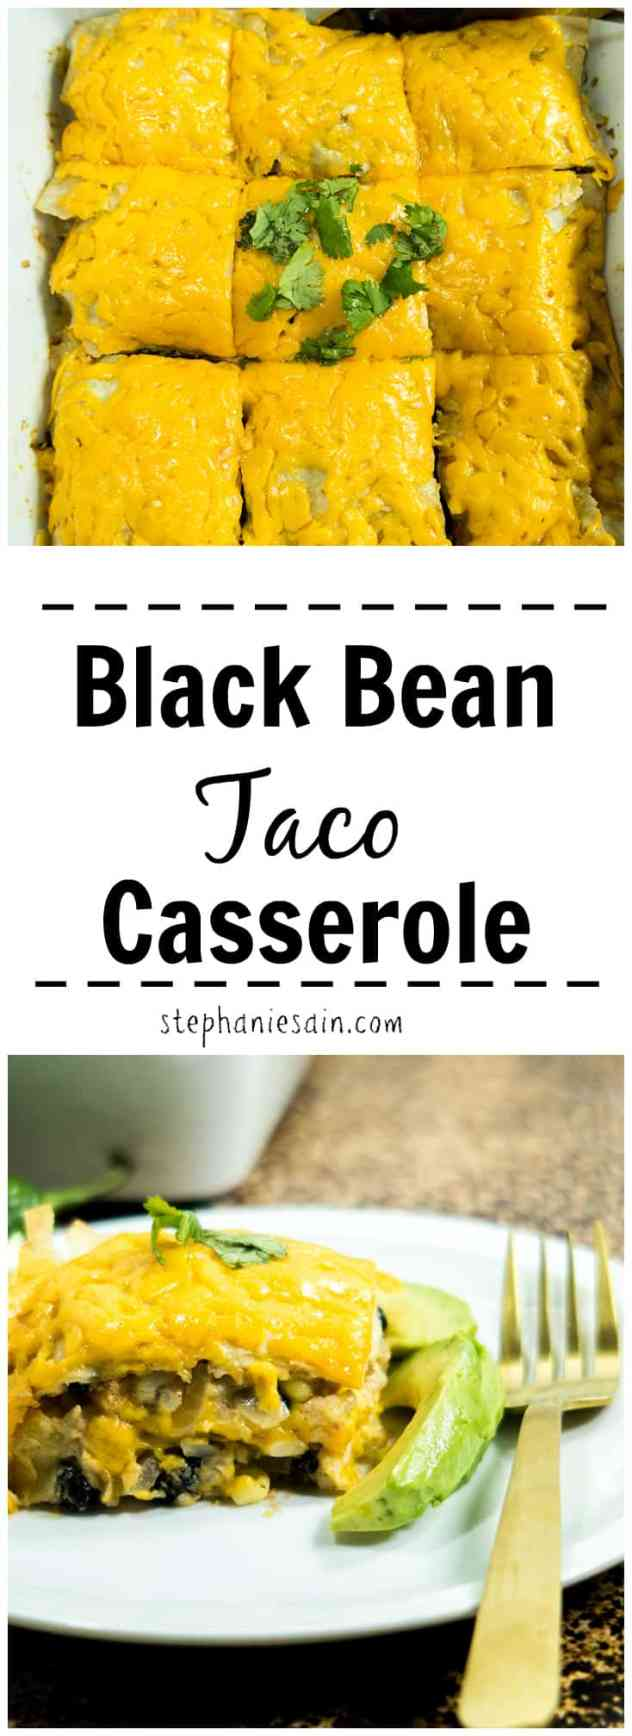 This Black Bean Taco Casserole is super Easy to make and only requires a handful of ingredients. Perfect easy weeknight dinner and great way to switch up Taco night. Gluten Free & Vegetarian.